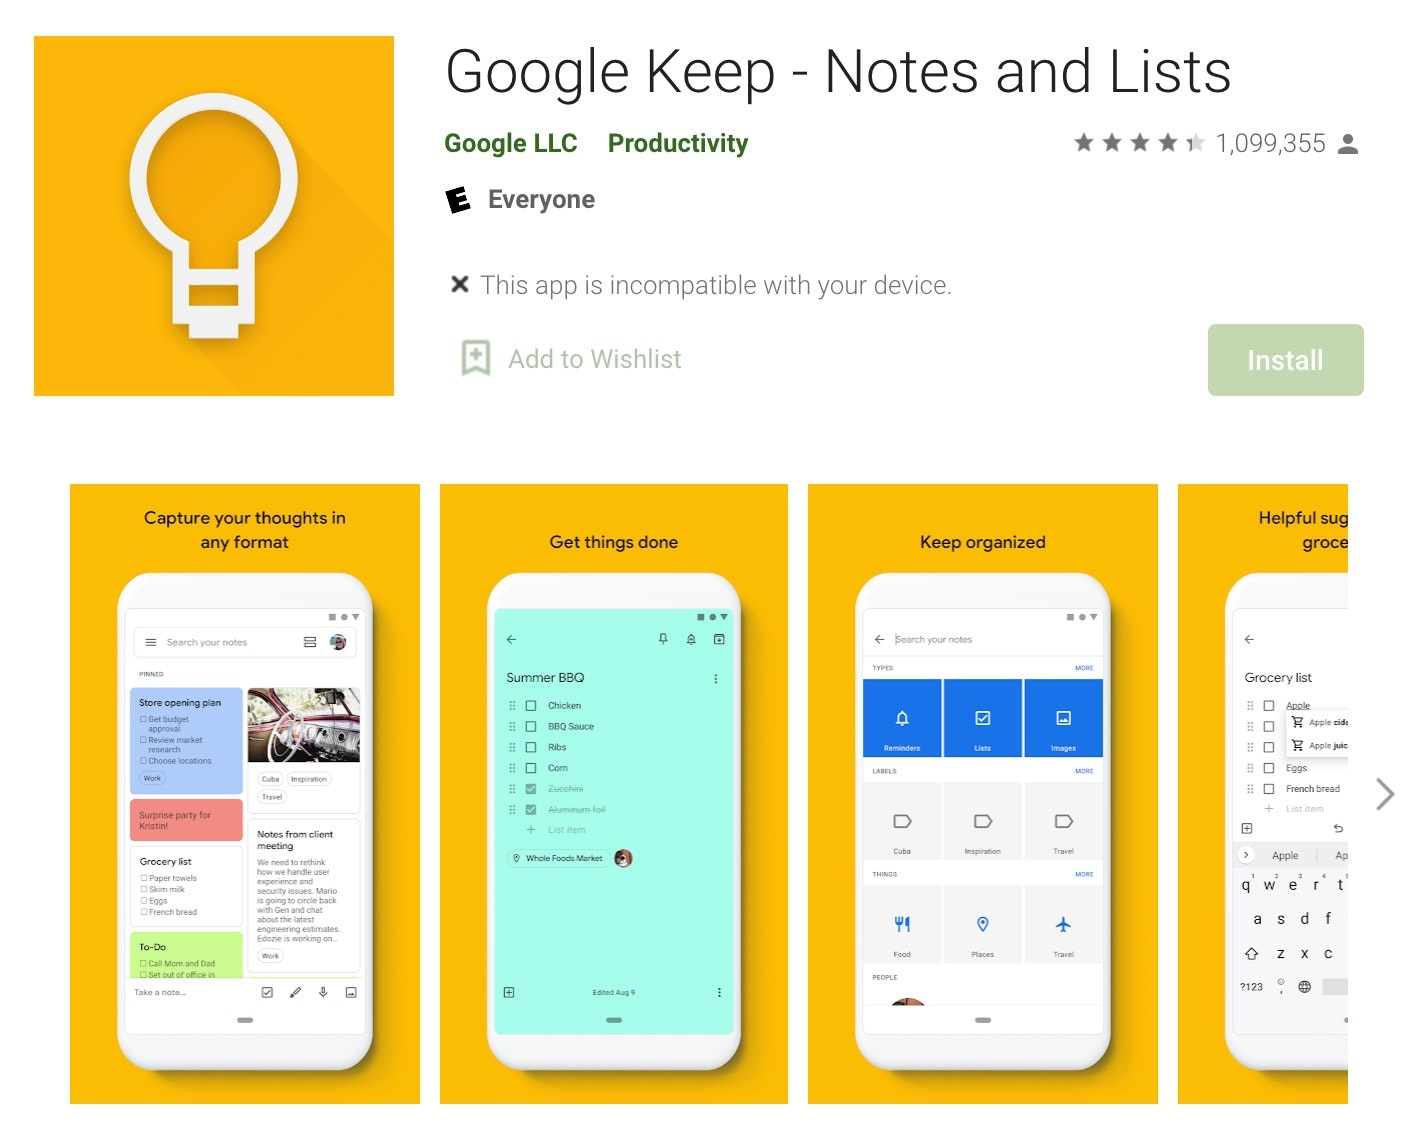 Google Keep notes and list